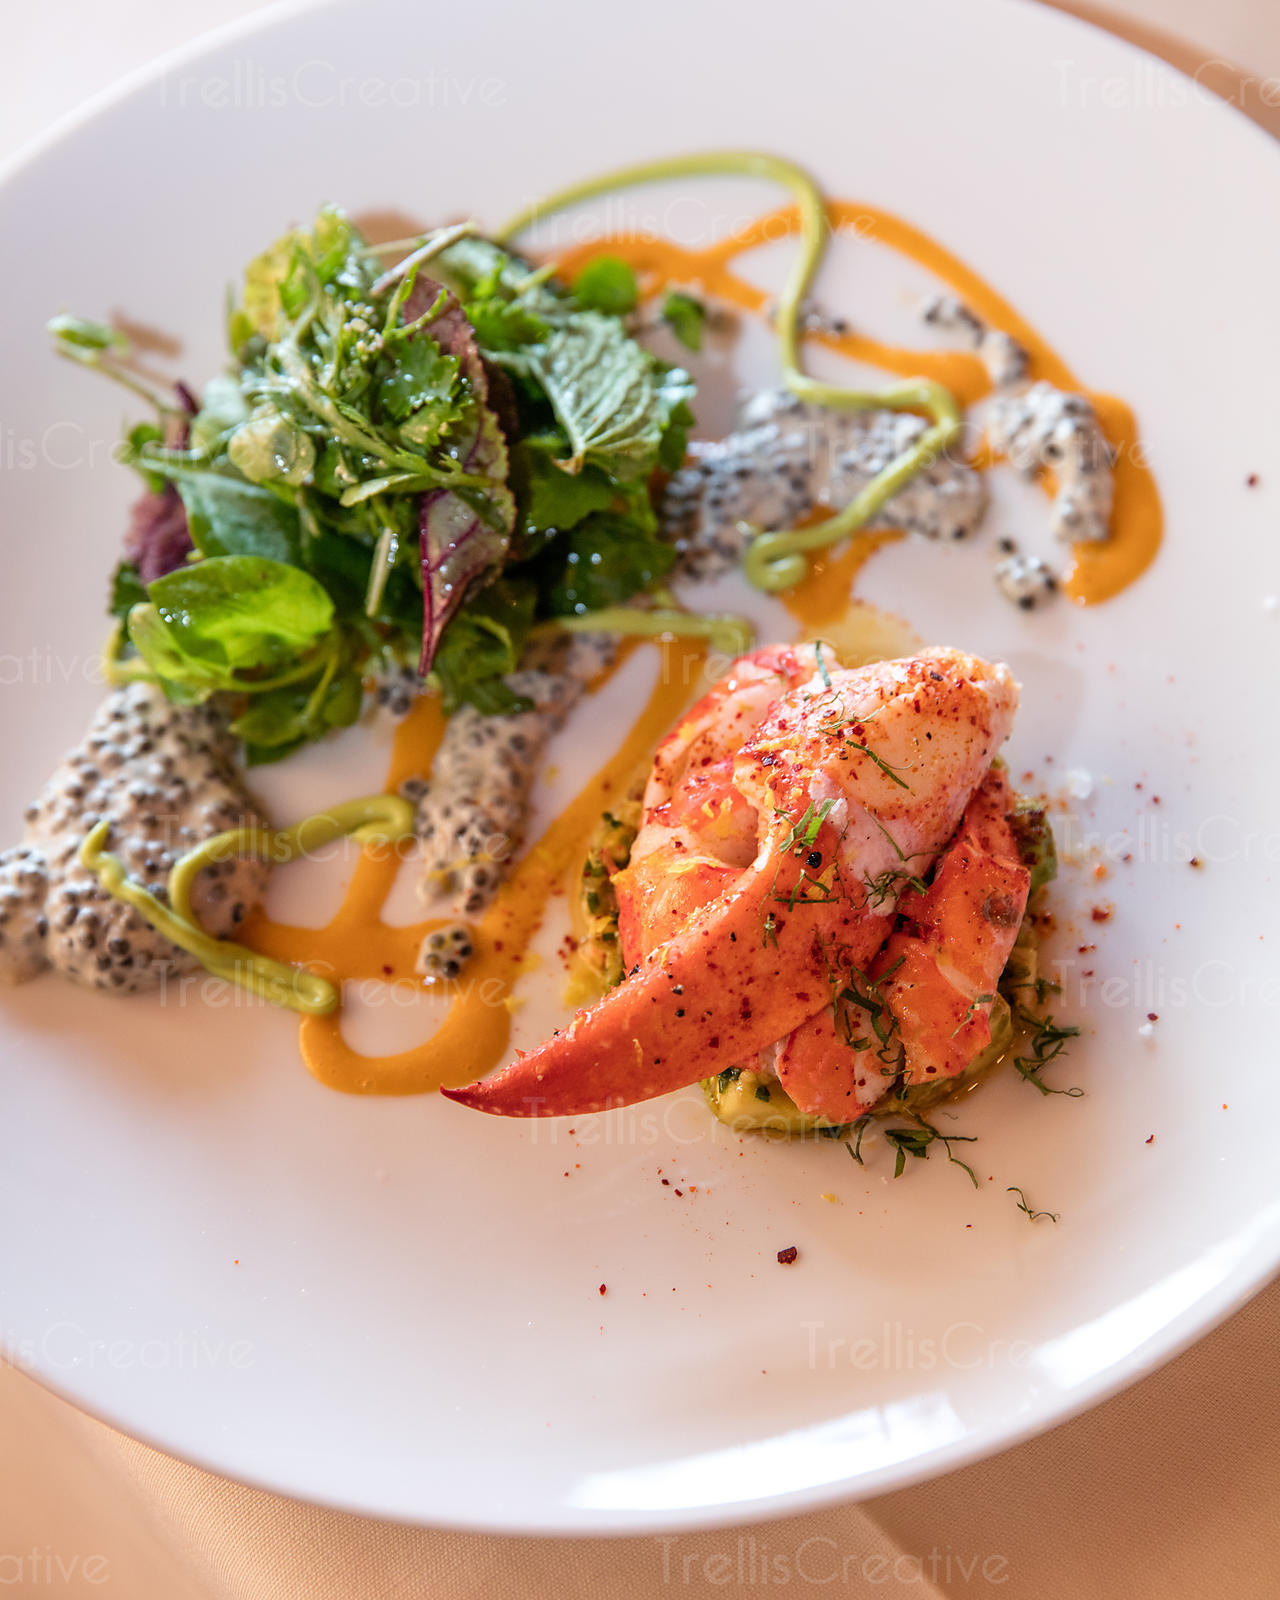 Images of Gourmet Lobster Appetizers - #rock-cafe